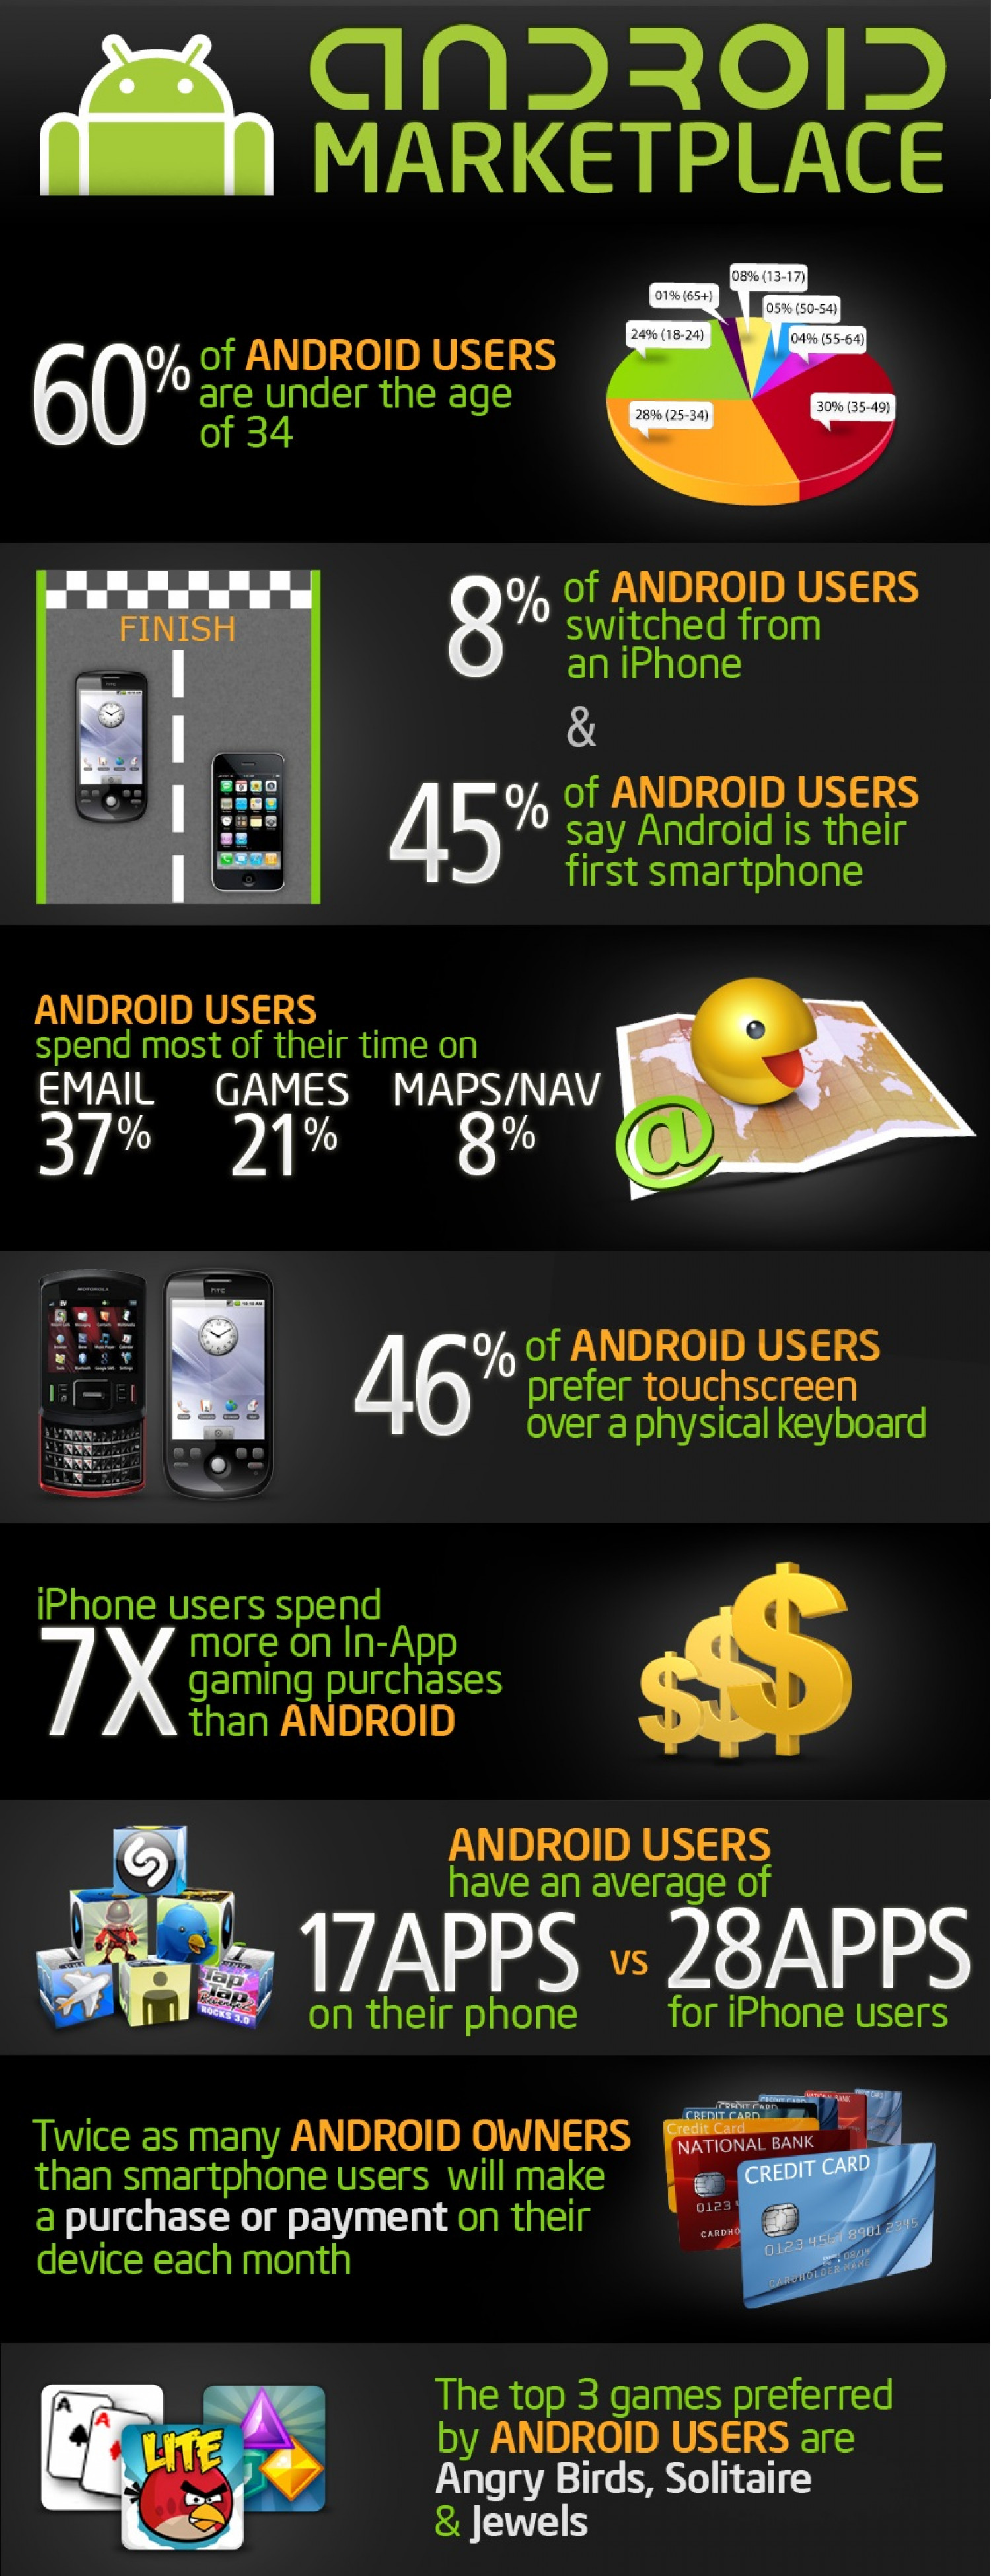 Android Vs iPhone Usage Infographic